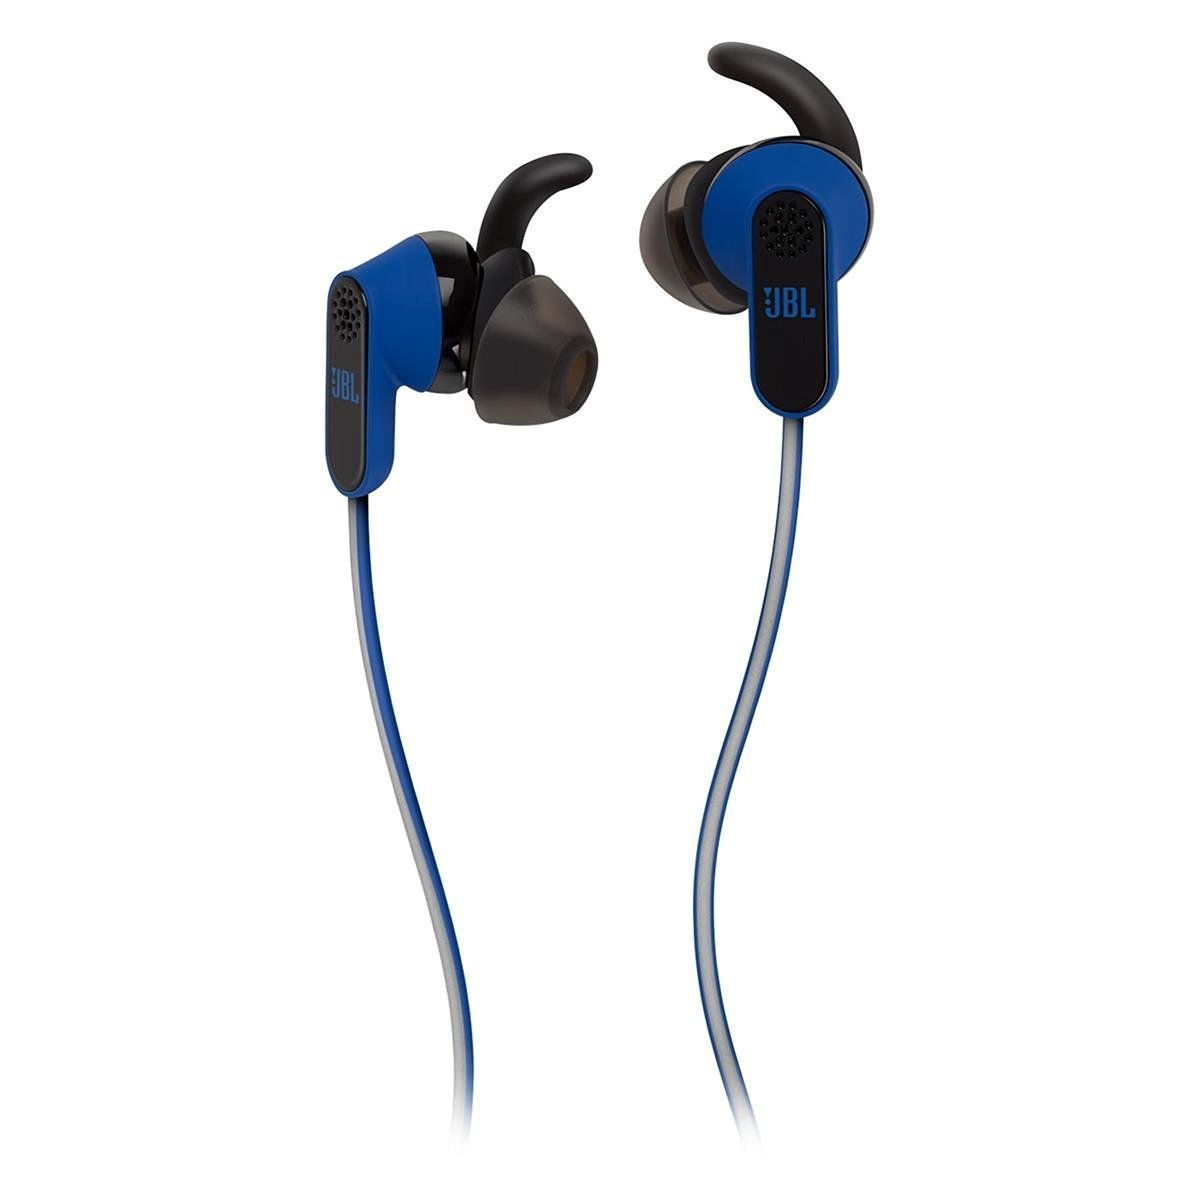 Image for JBL Reflect Aware in-ear sport headphones with lightning - Blue from Circuit City